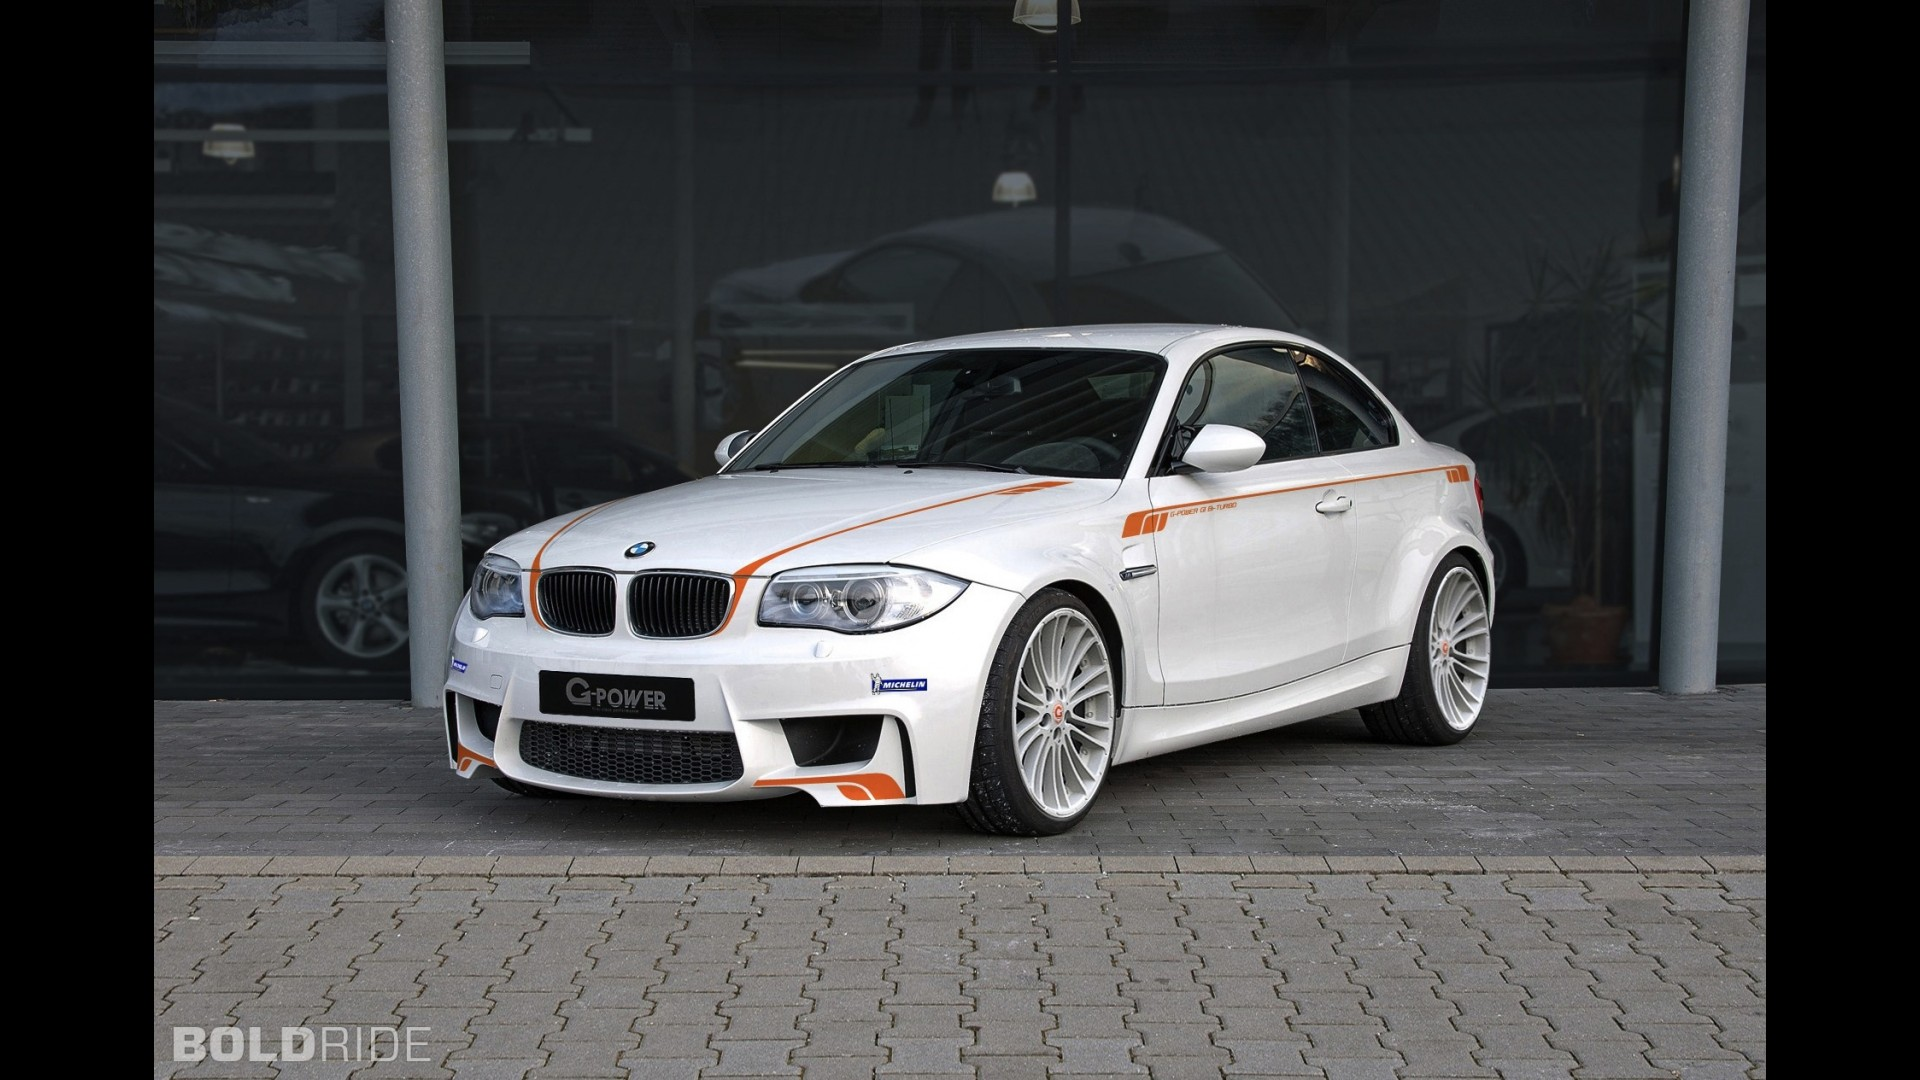 g power bmw 1m coupe. Black Bedroom Furniture Sets. Home Design Ideas